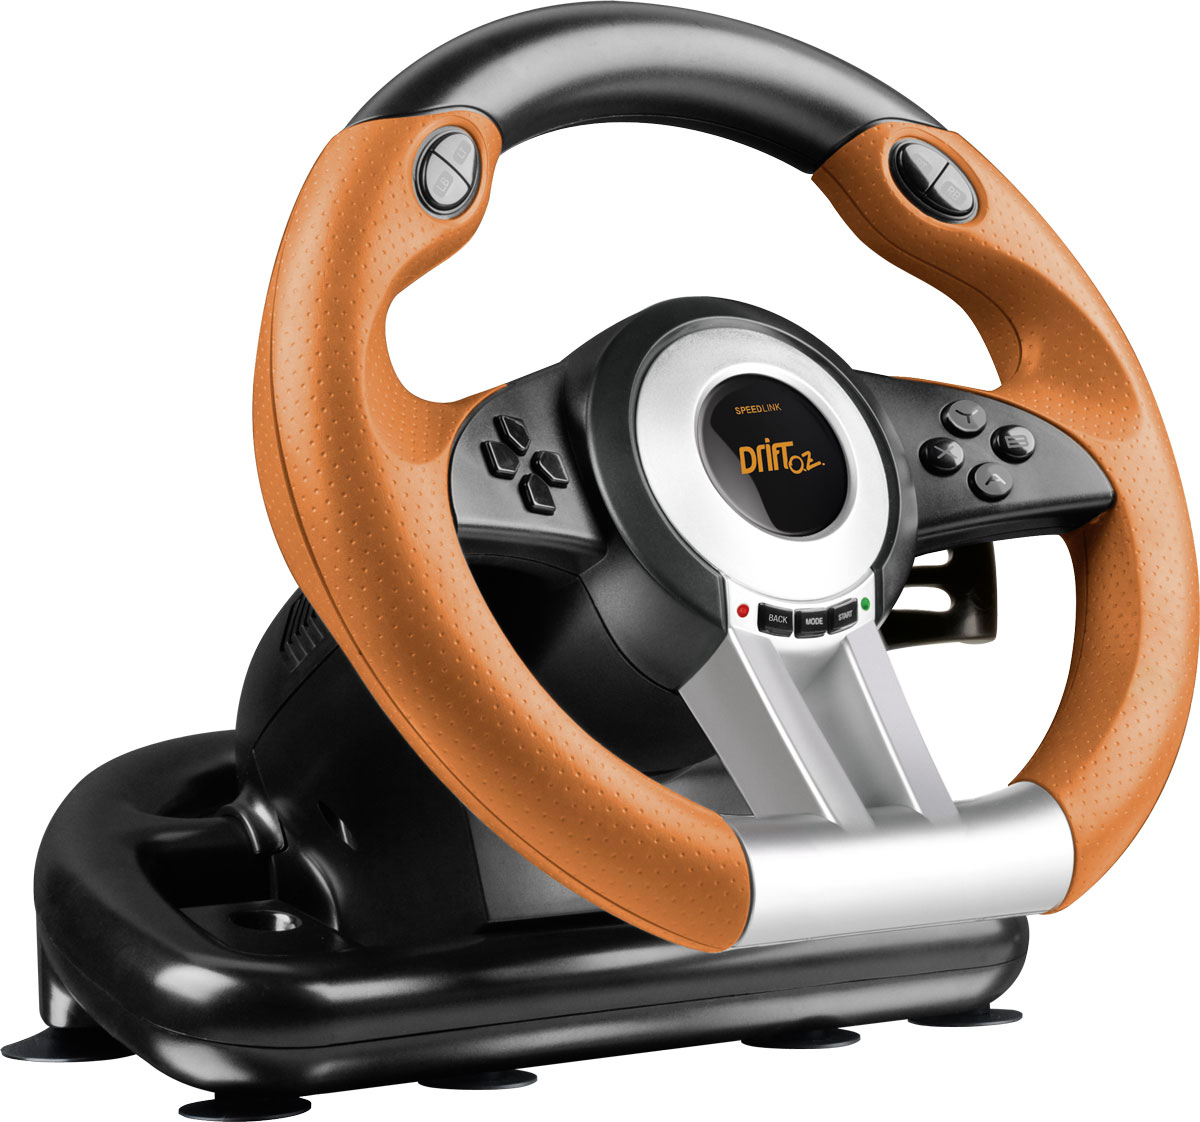 Zakazat.ru Speedlink Drift O.Z. Racing Wheel, Black Orange руль